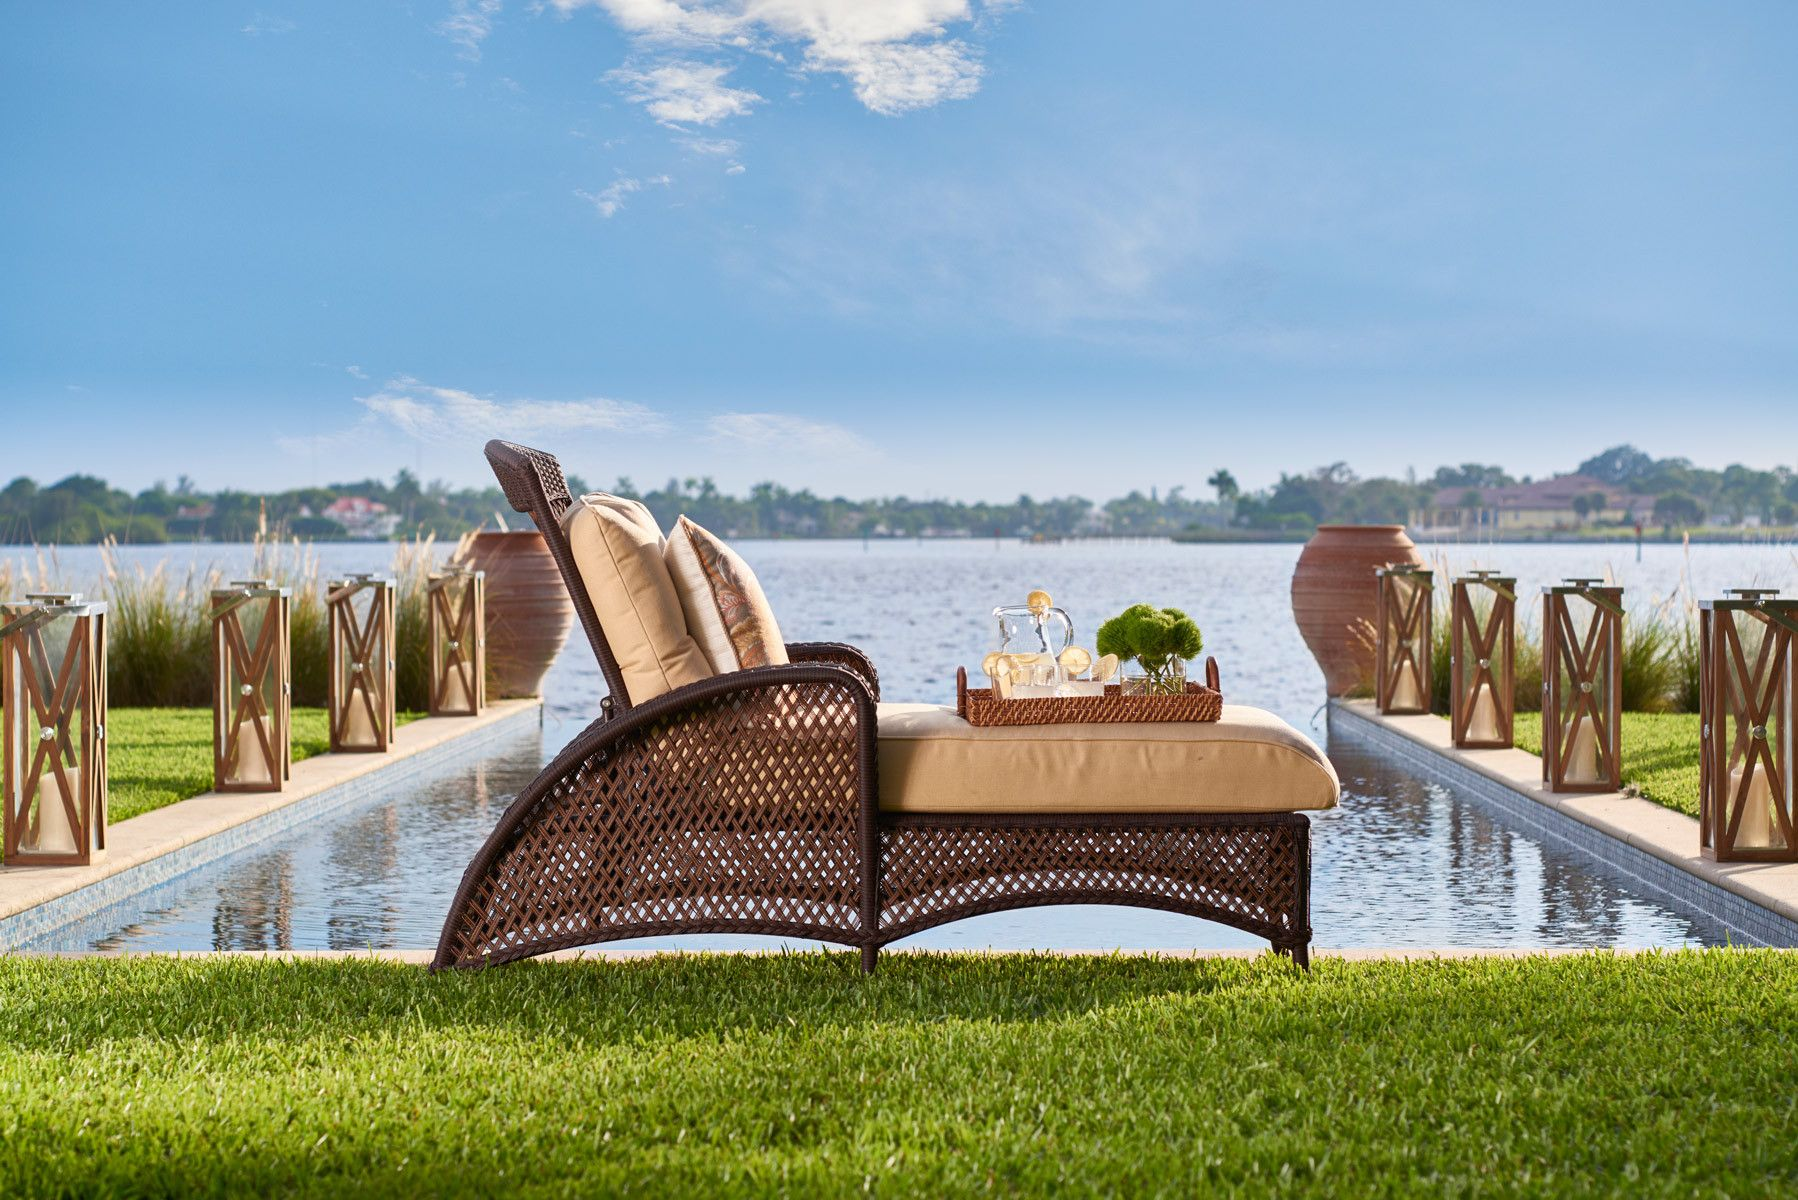 Chaise by the bay